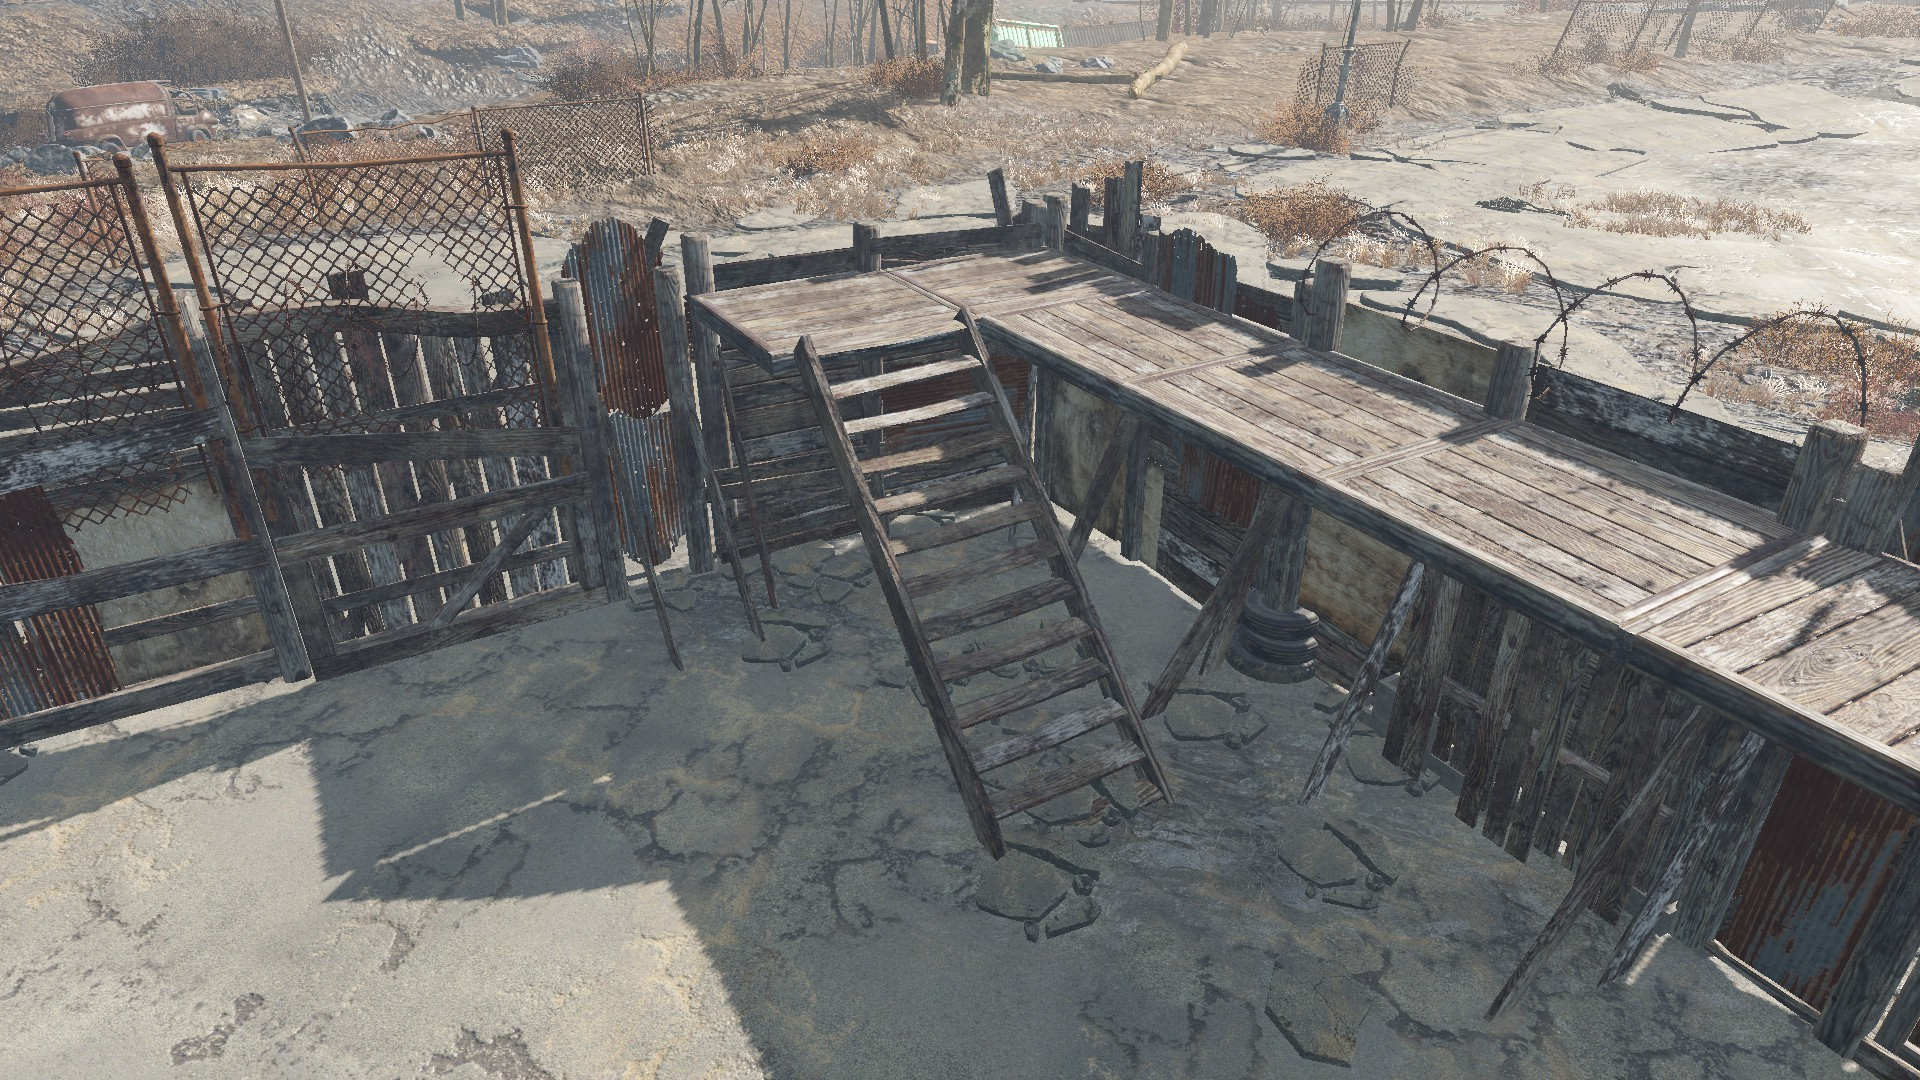 Snapable Junk Fences || Пол к стенам для Fallout 4 - Скриншот 1